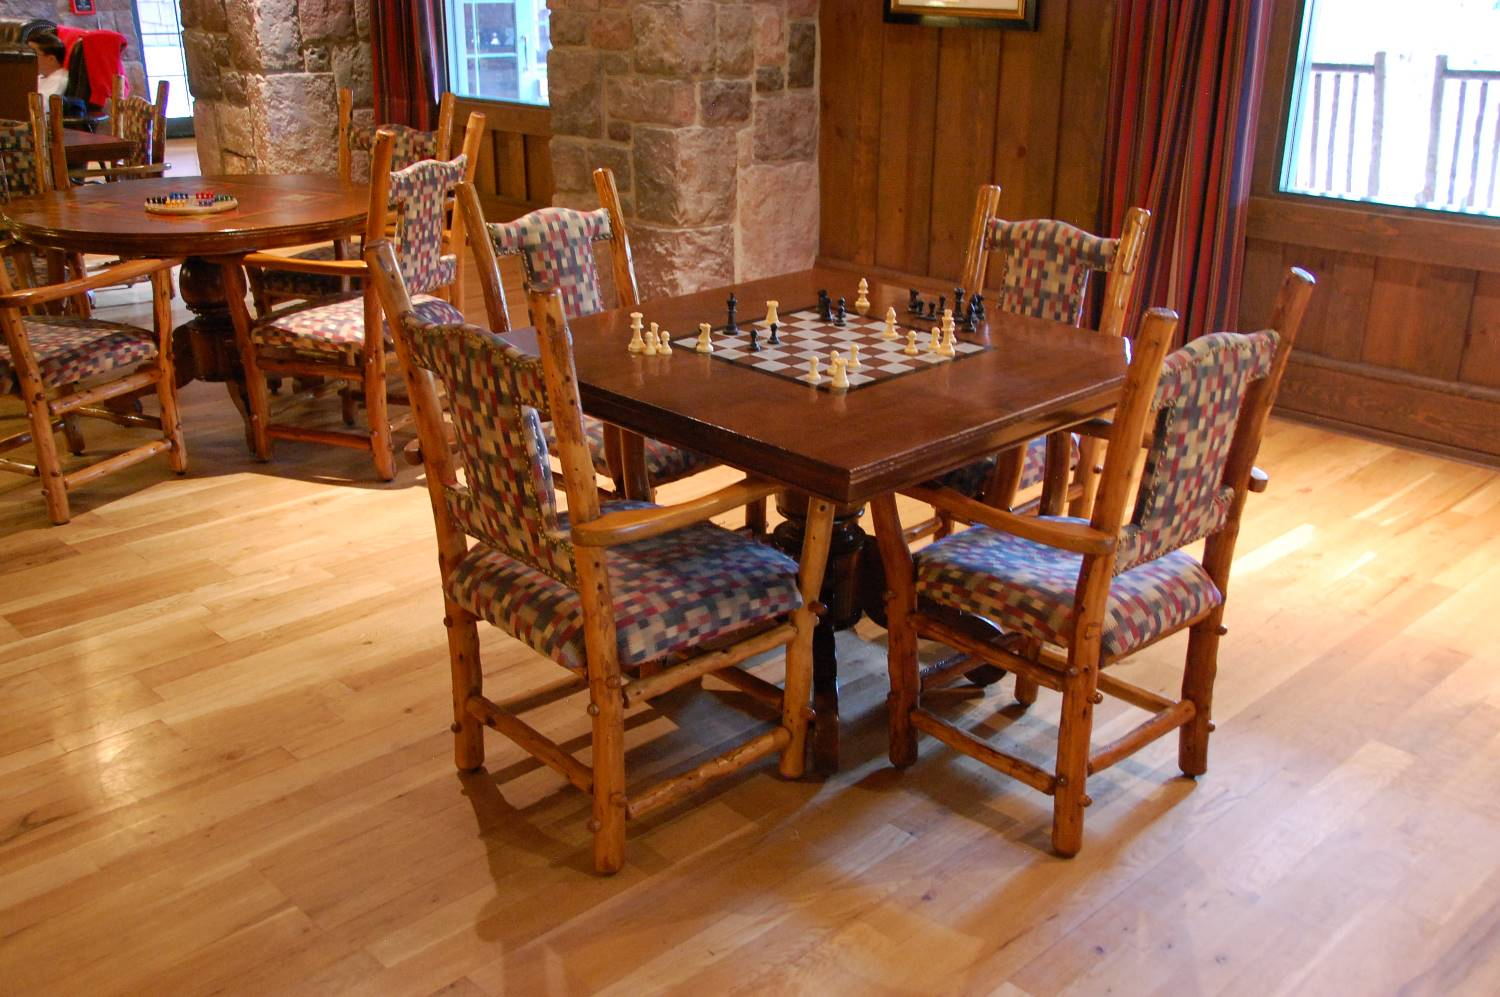 Enjoy time with family or a quiet game of checkers in the Carolwood Pacific room at the Villas at Disney's Wilderness Lodge in the Walt Disney World Resort in Florida.